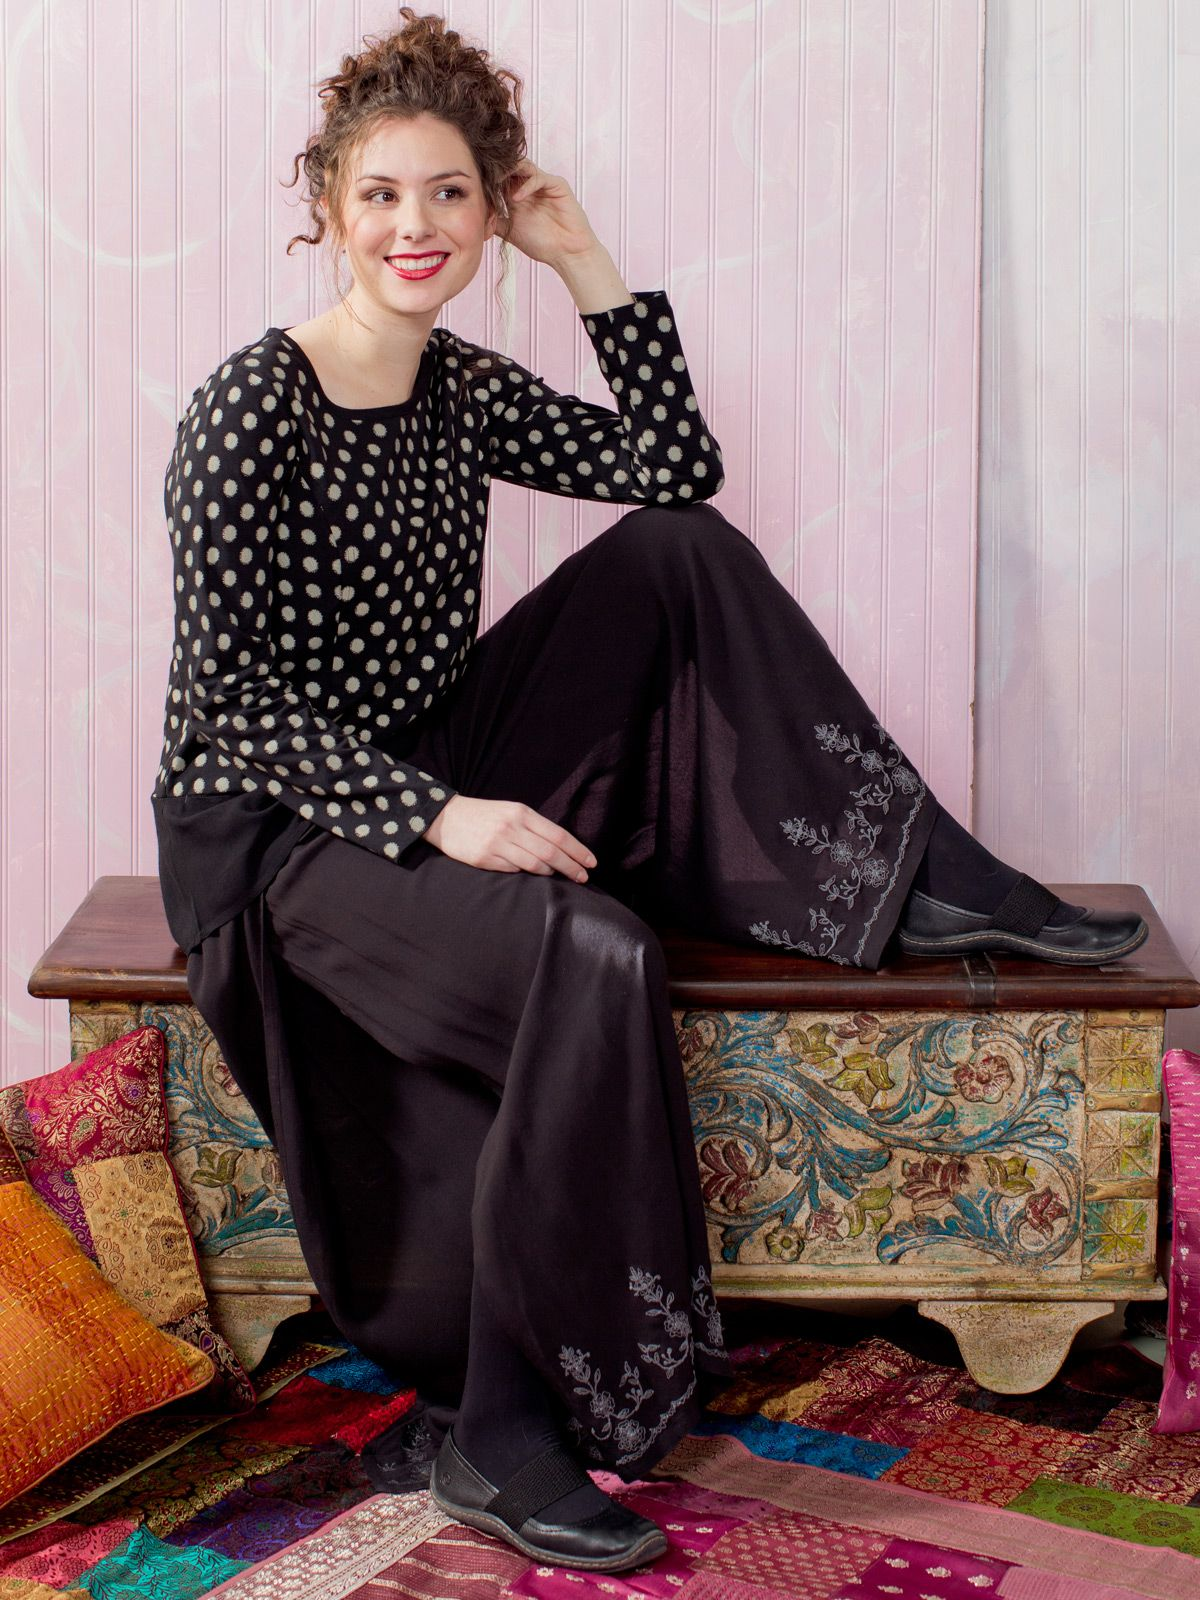 Gala Ladies Pant | Ladies, Skirts & Pants:Beautiful Designs by April Cornell